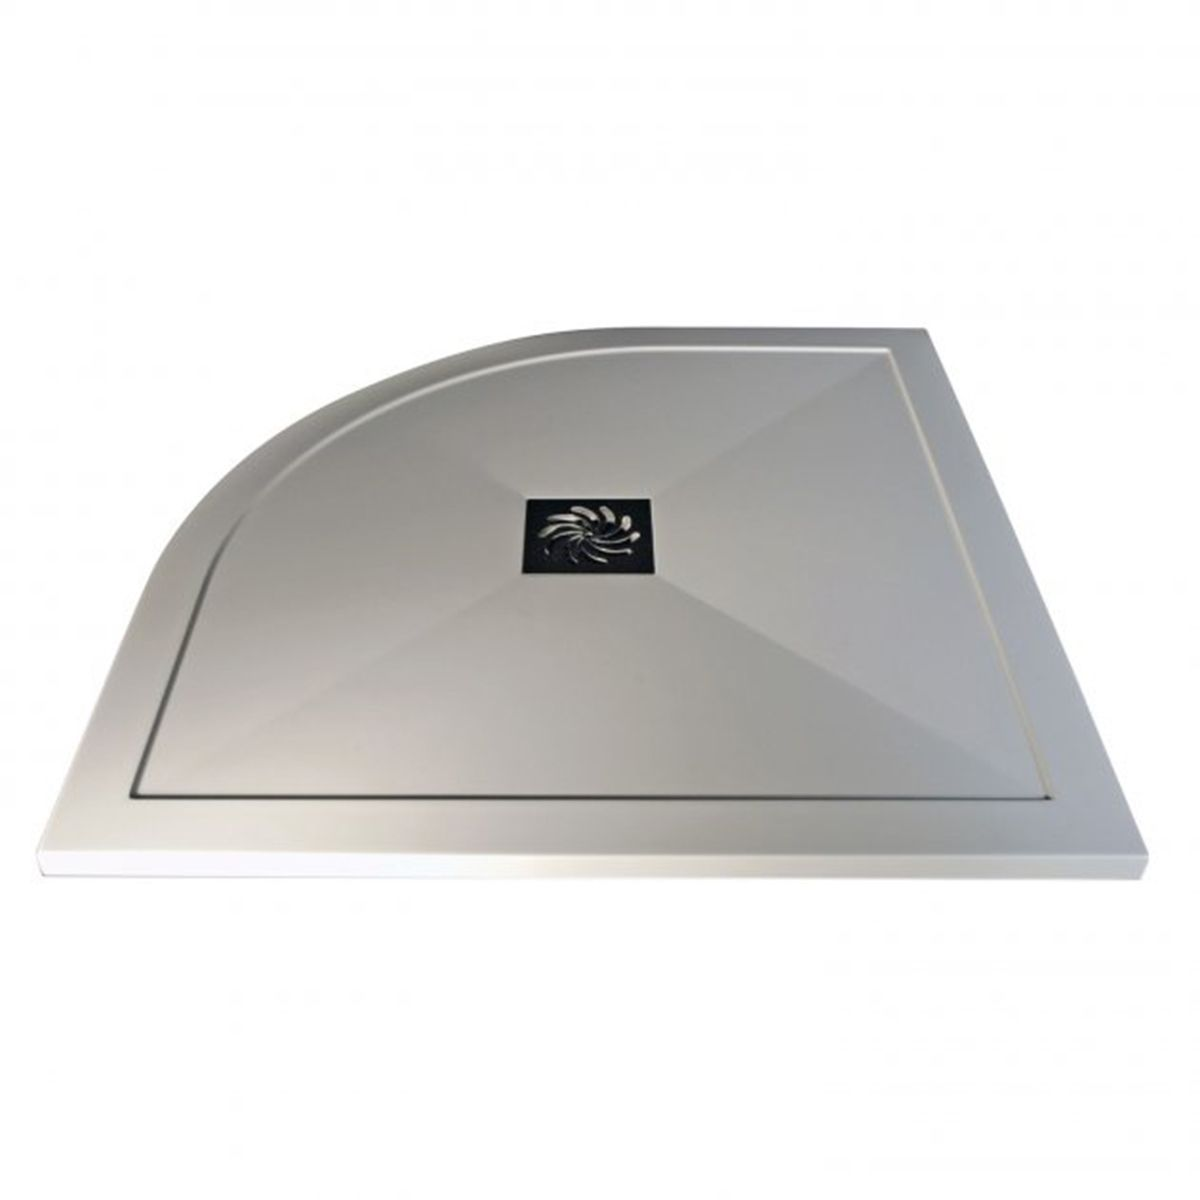 Bathrooms To Love White Quadrant Ultraslim Shower Tray with Waste 800mm x 800mm